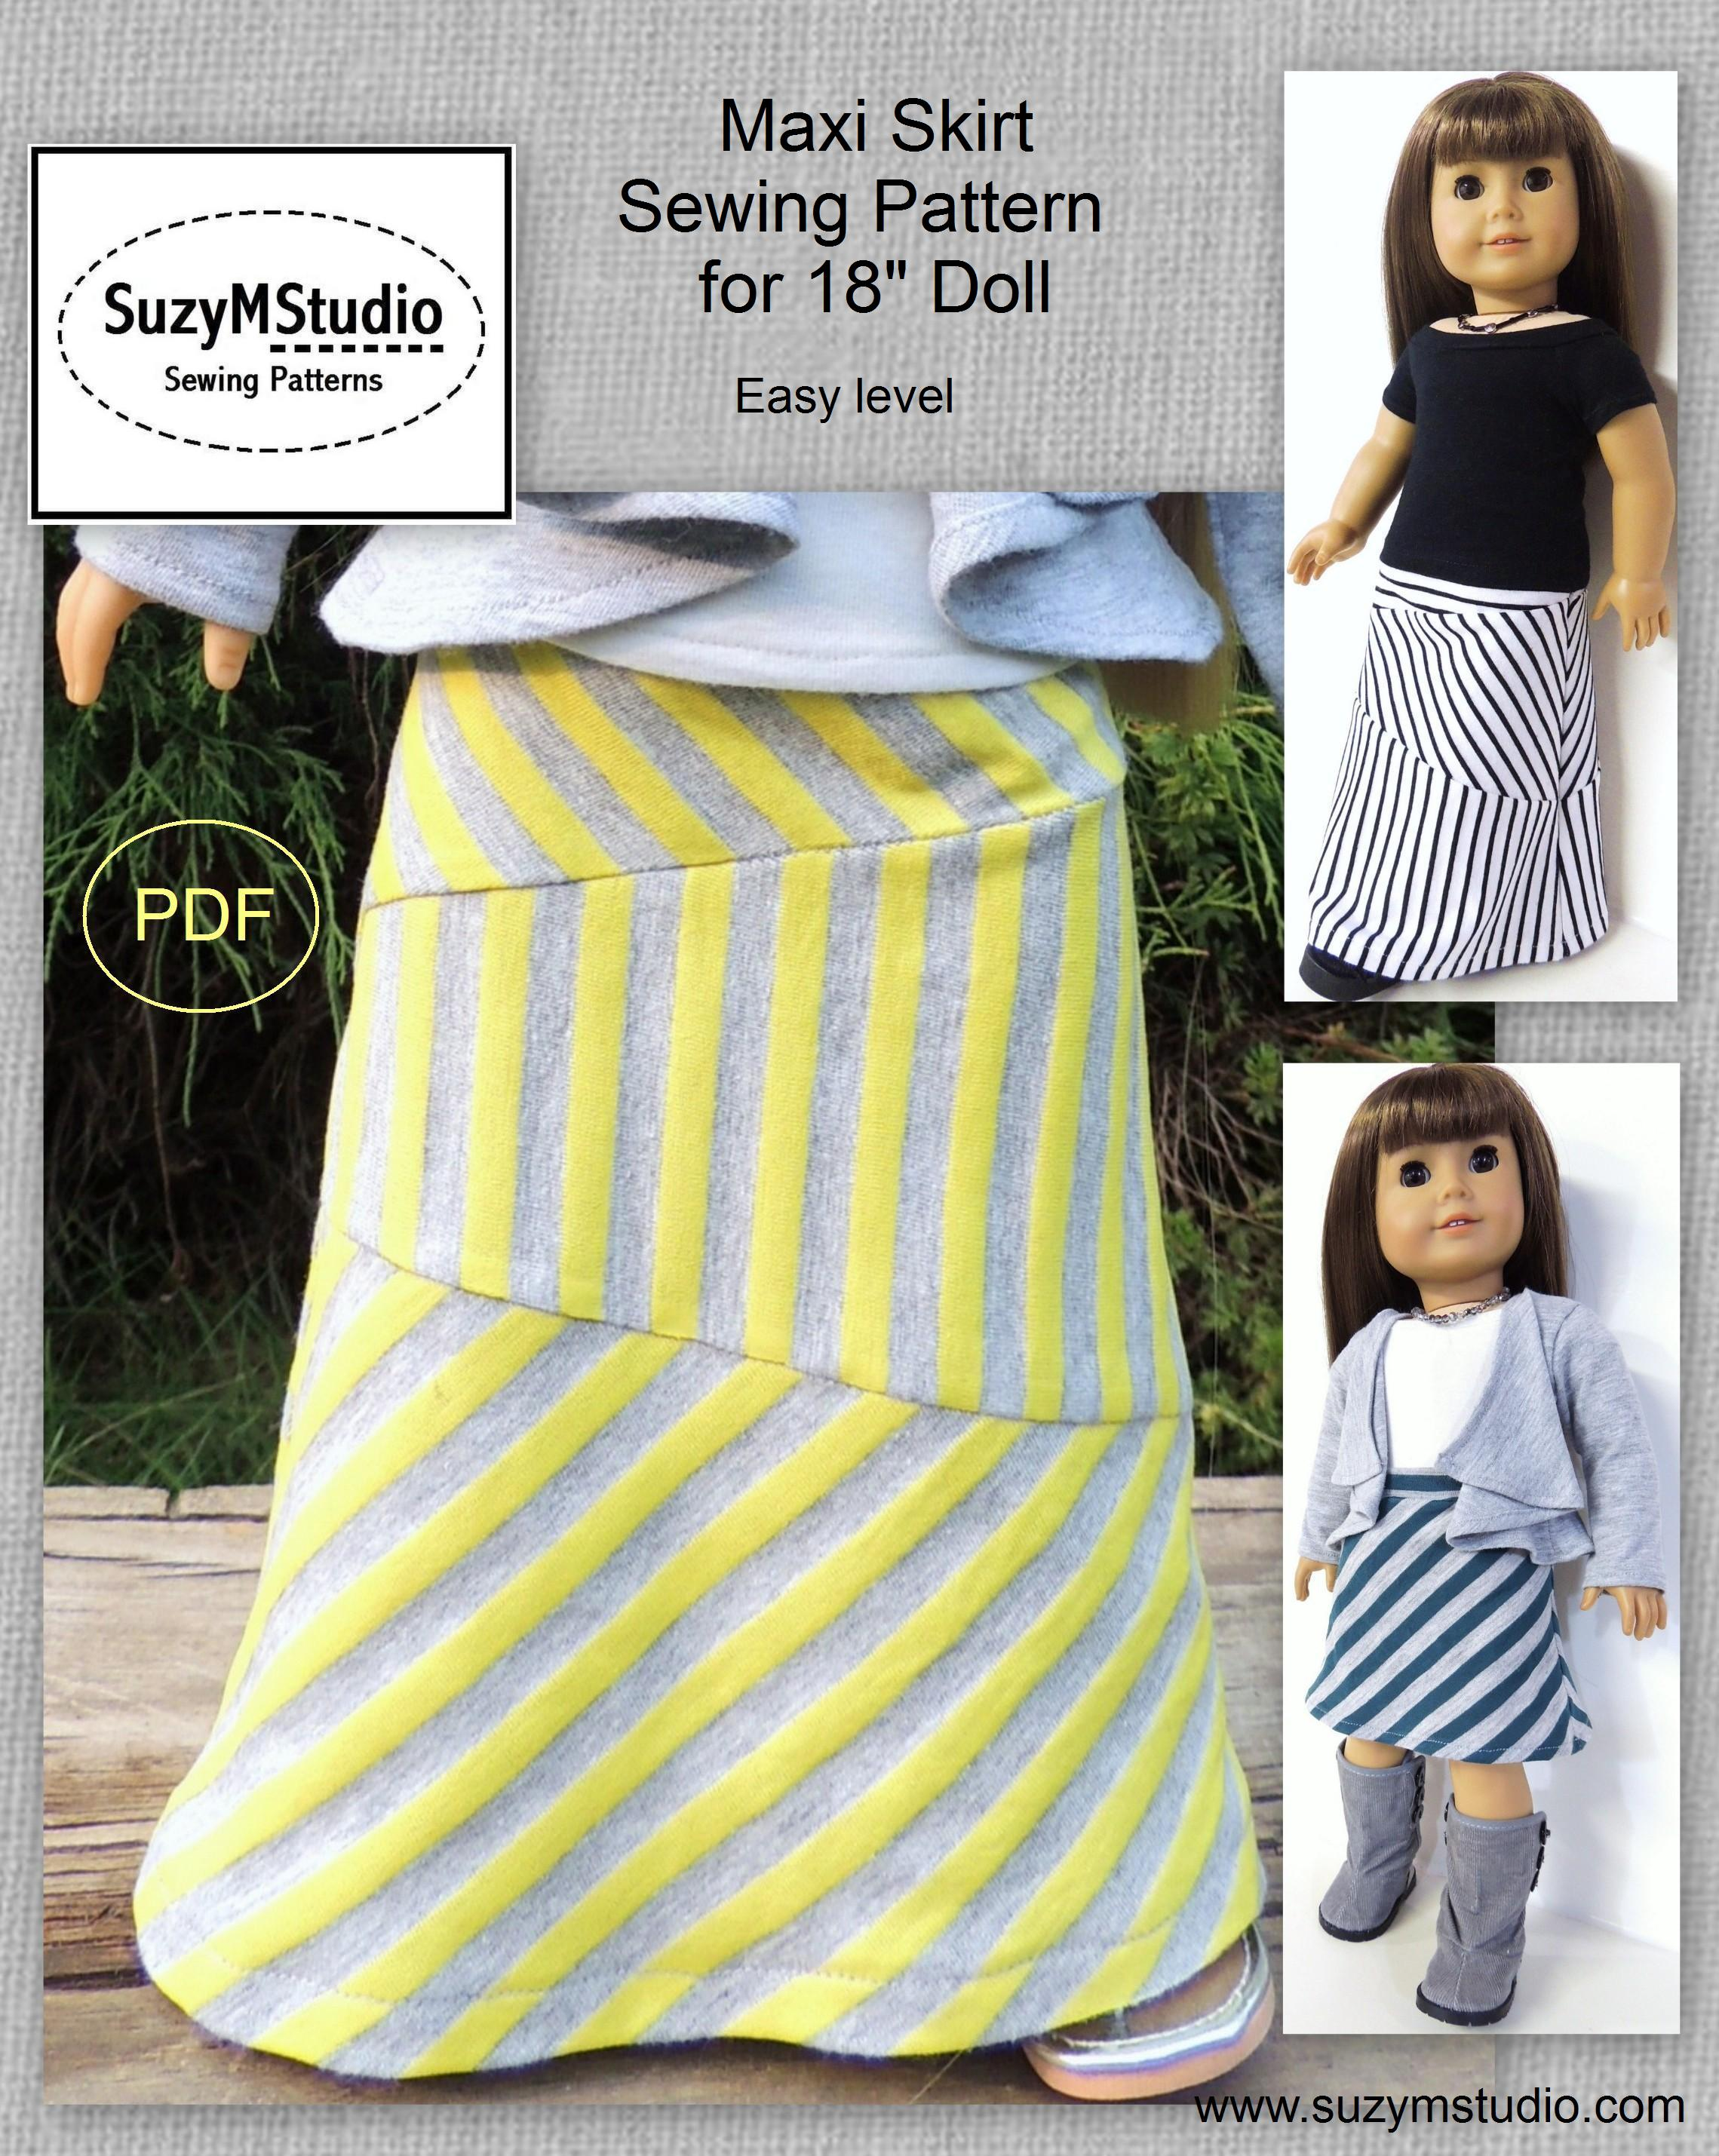 maxi skirt sewing pattern for 18 inch doll suzymstudio